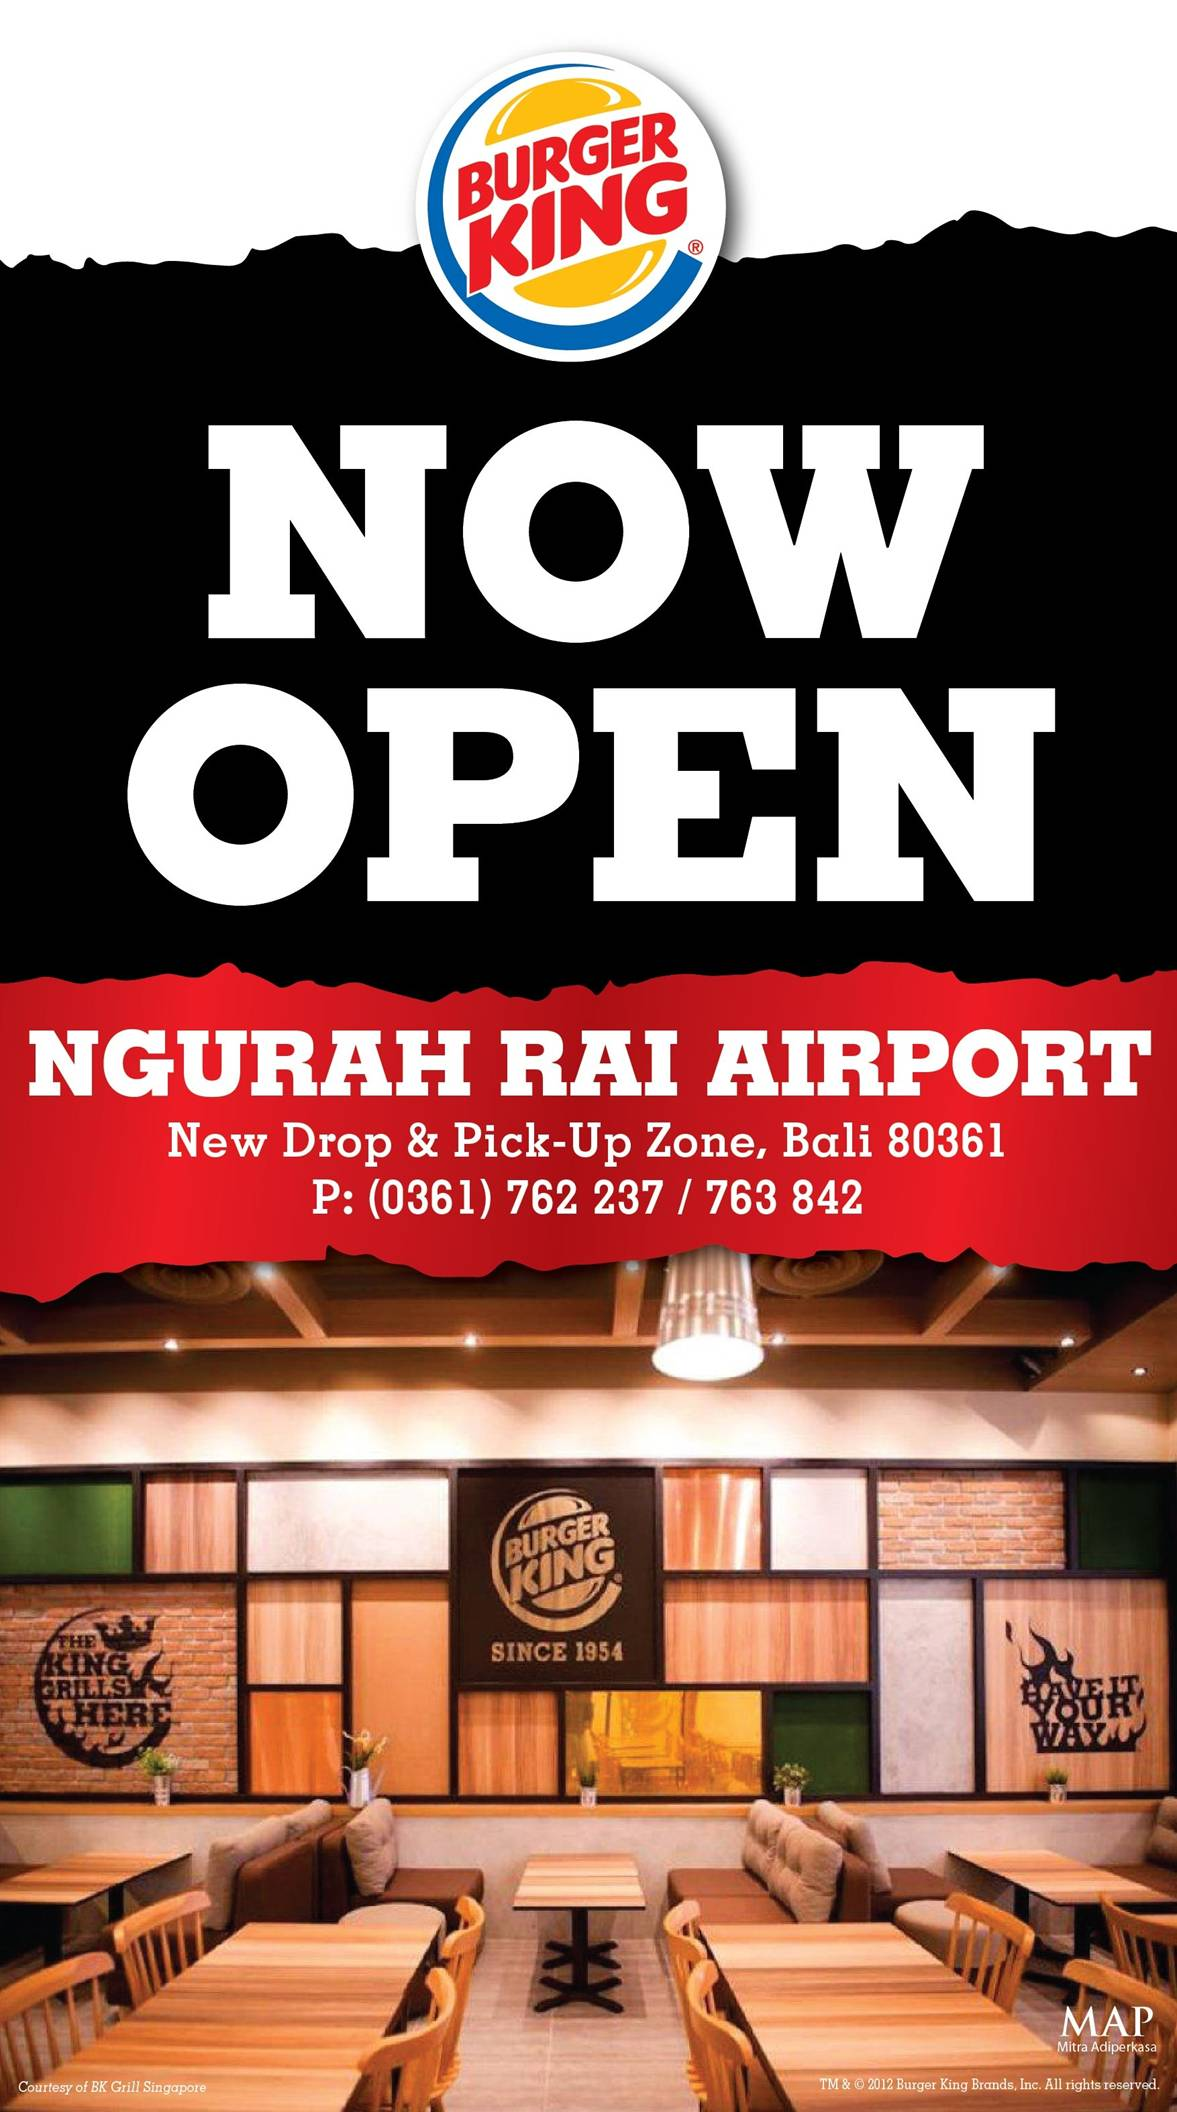 BURGER KING NOW OPEN! at Ngurah Rai Airport, Denpasar!